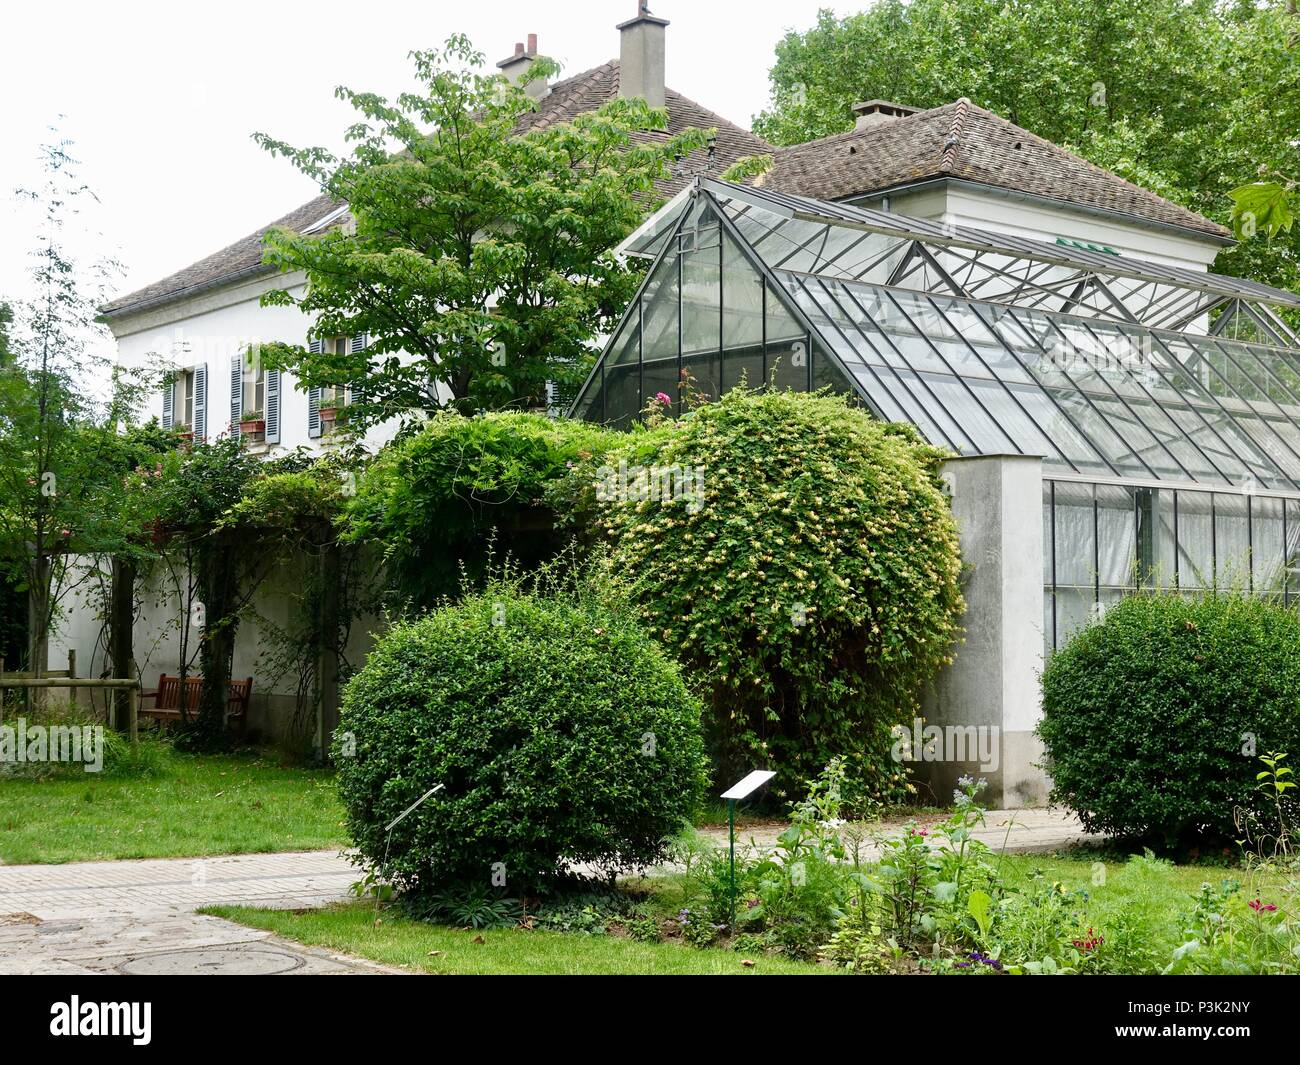 Greenhouse attached to building located in the middle of Bercy Park, Paris, France - Stock Image